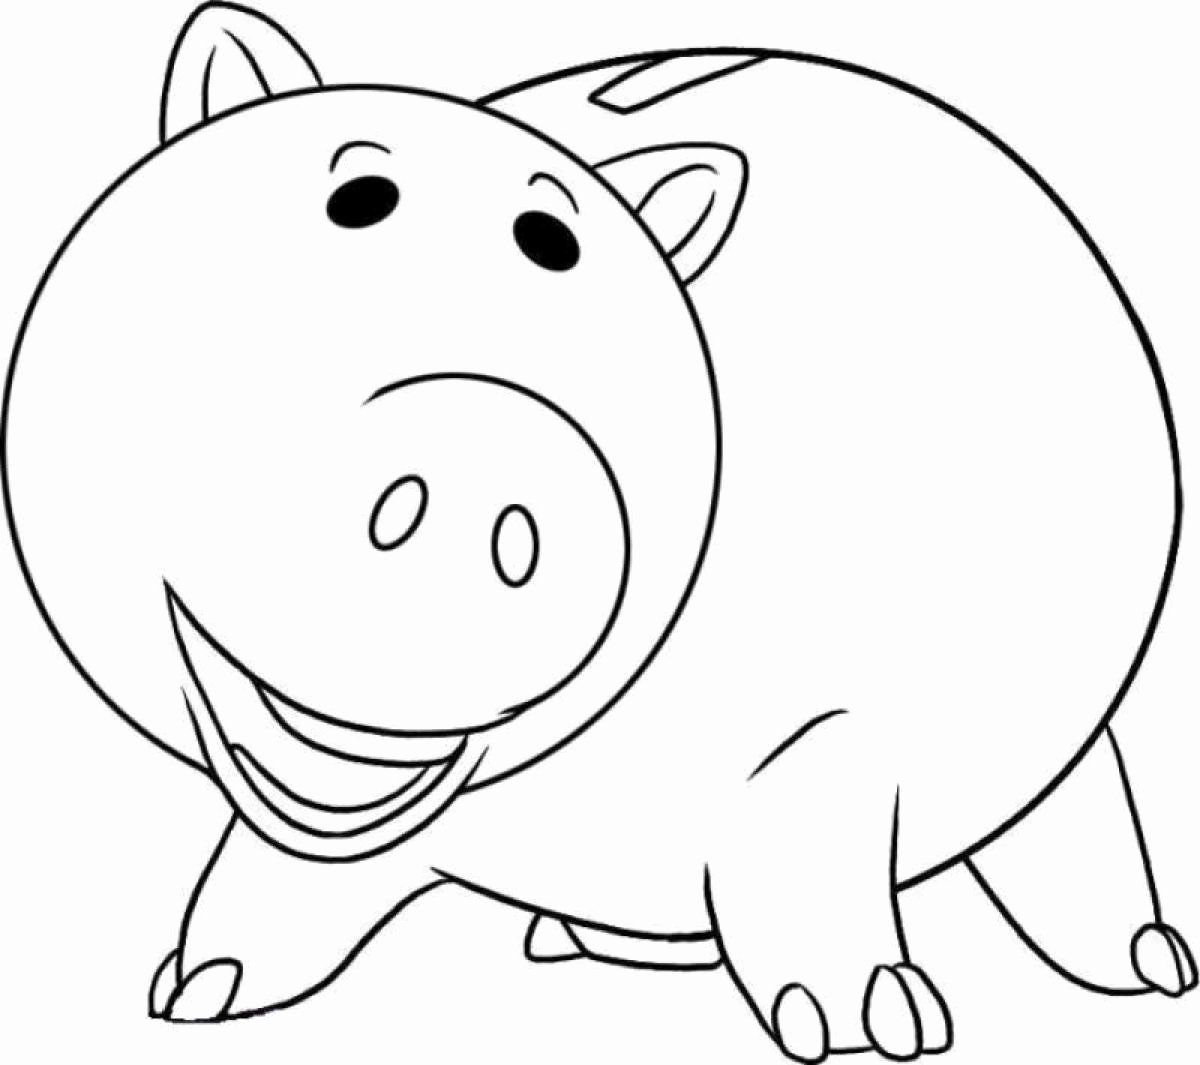 Coloring Sheets Toy Story Elegant Toy Story Characters Drawing At Getdrawings Toy Story Coloring Pages Toy Story Crafts Coloring Books